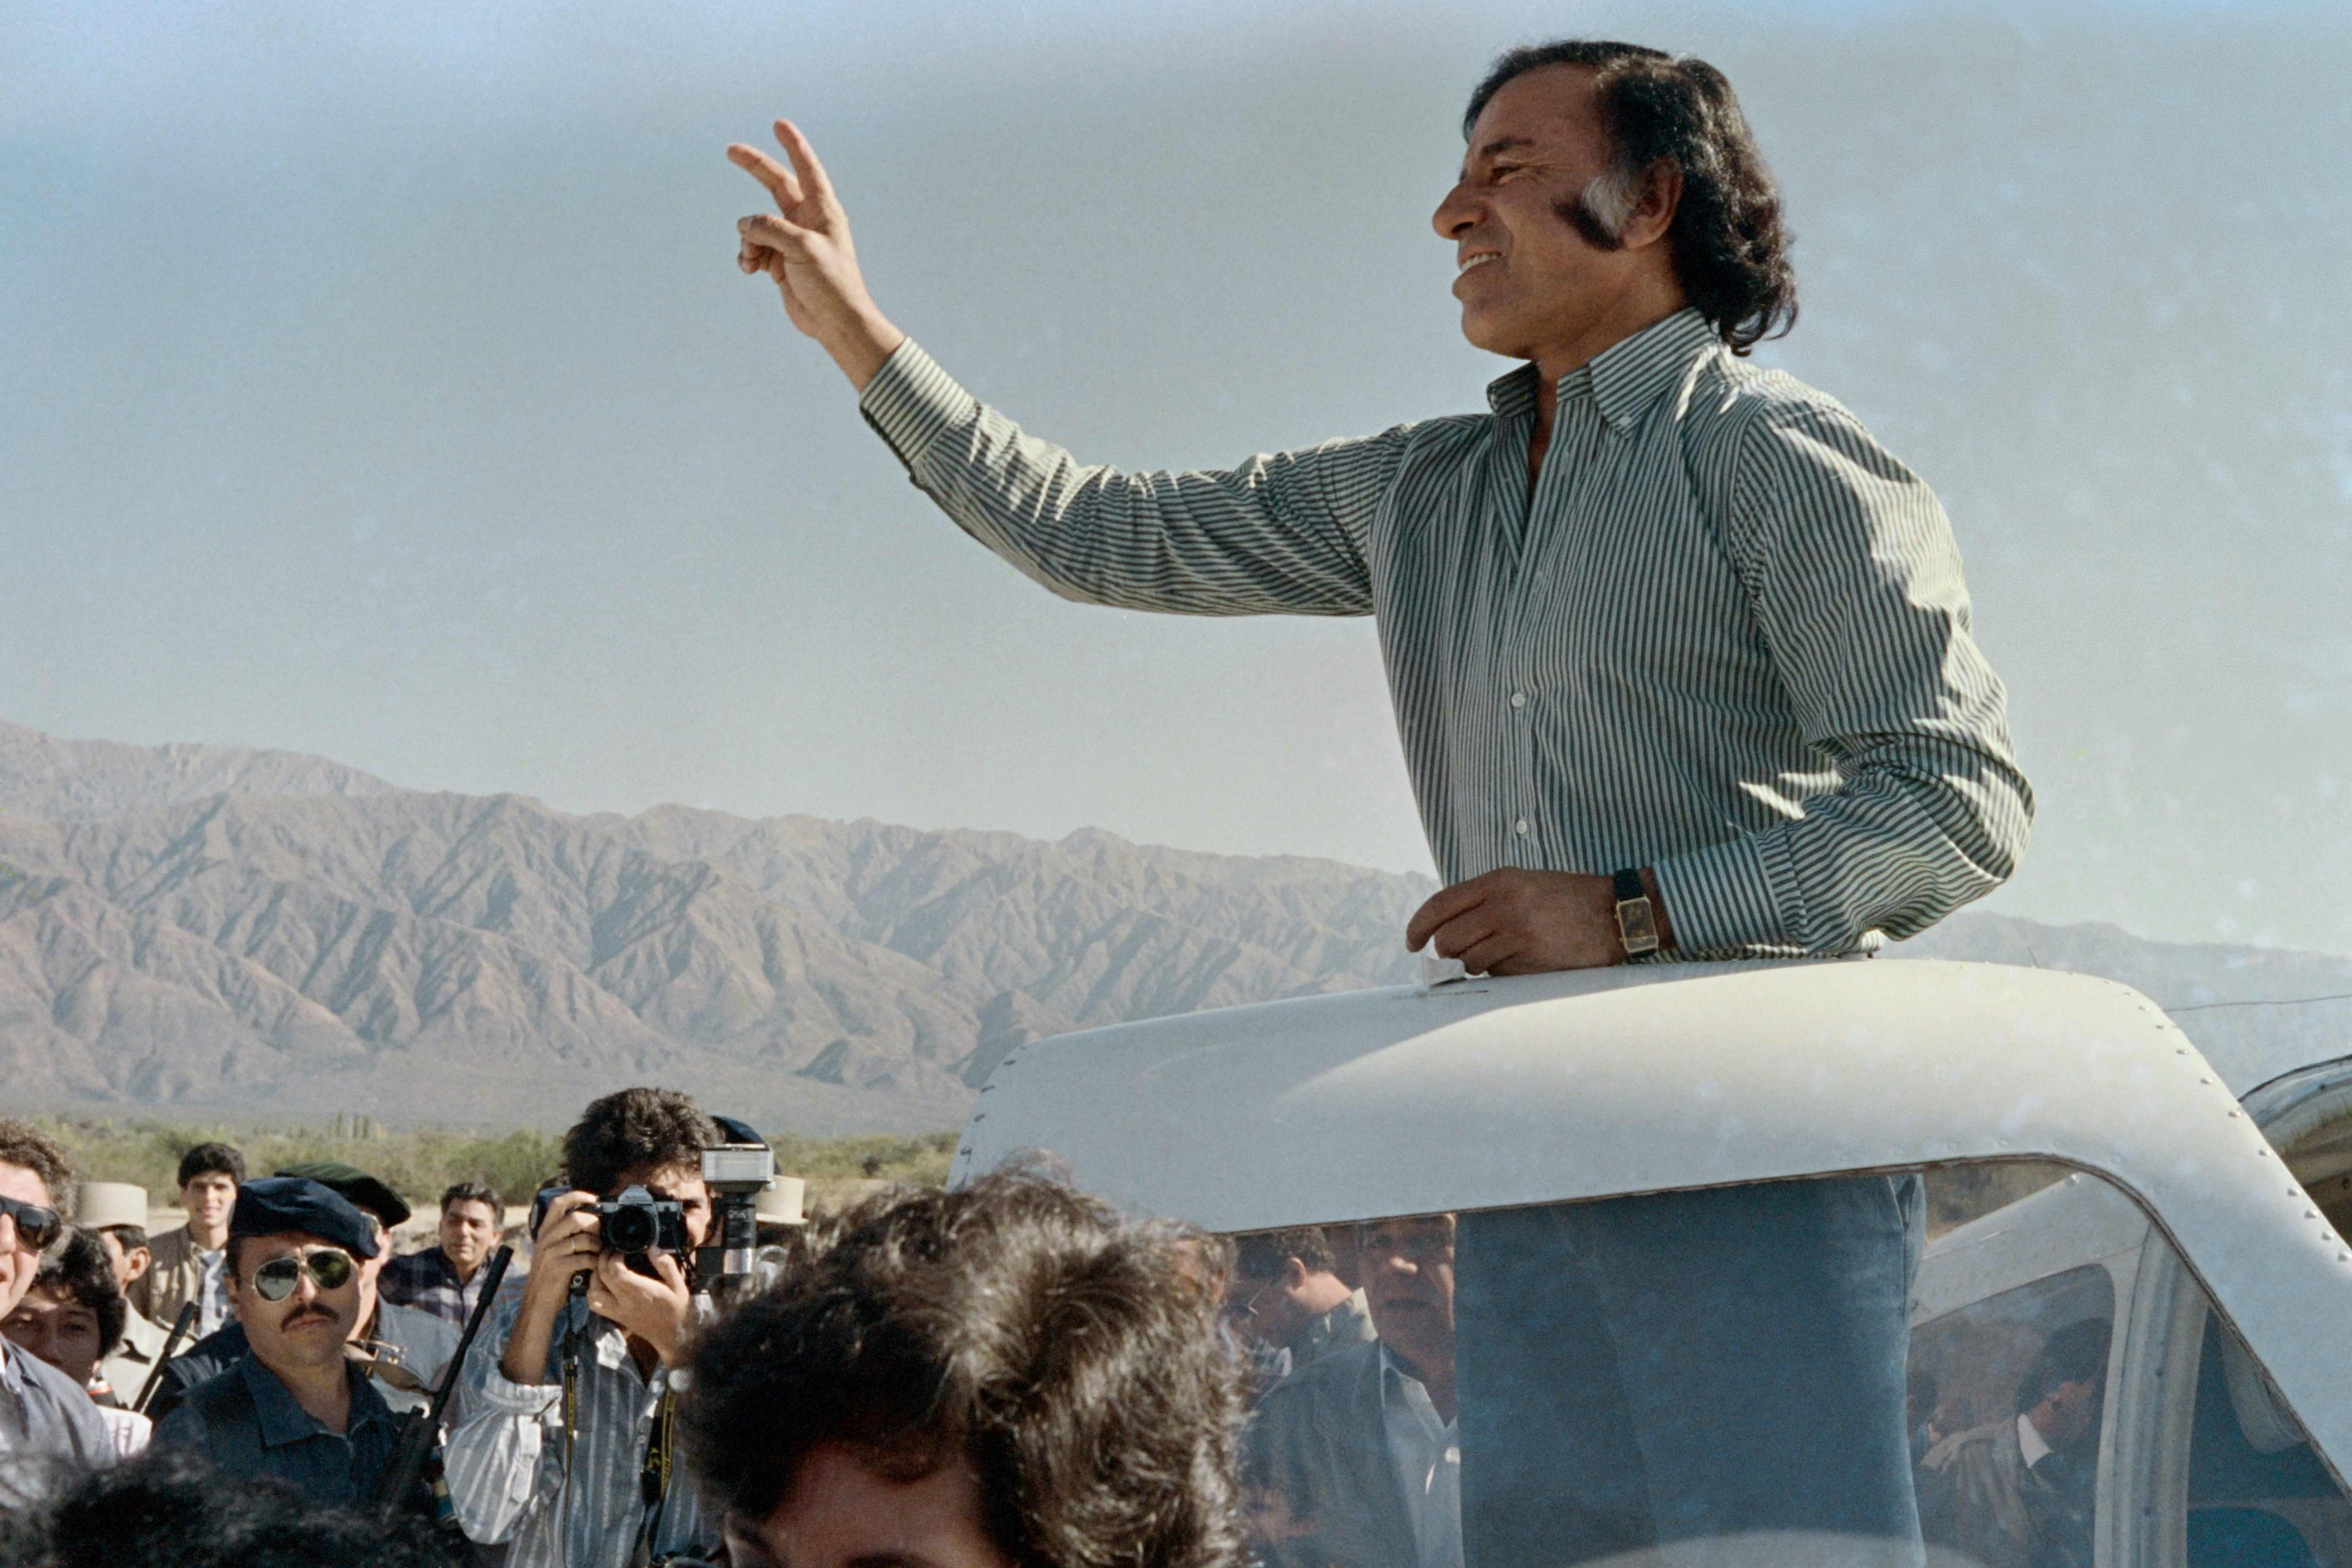 In this file photo taken on May 14, 1989, opposition presidential candidate Carlos Menem of the Peronist Justicialist